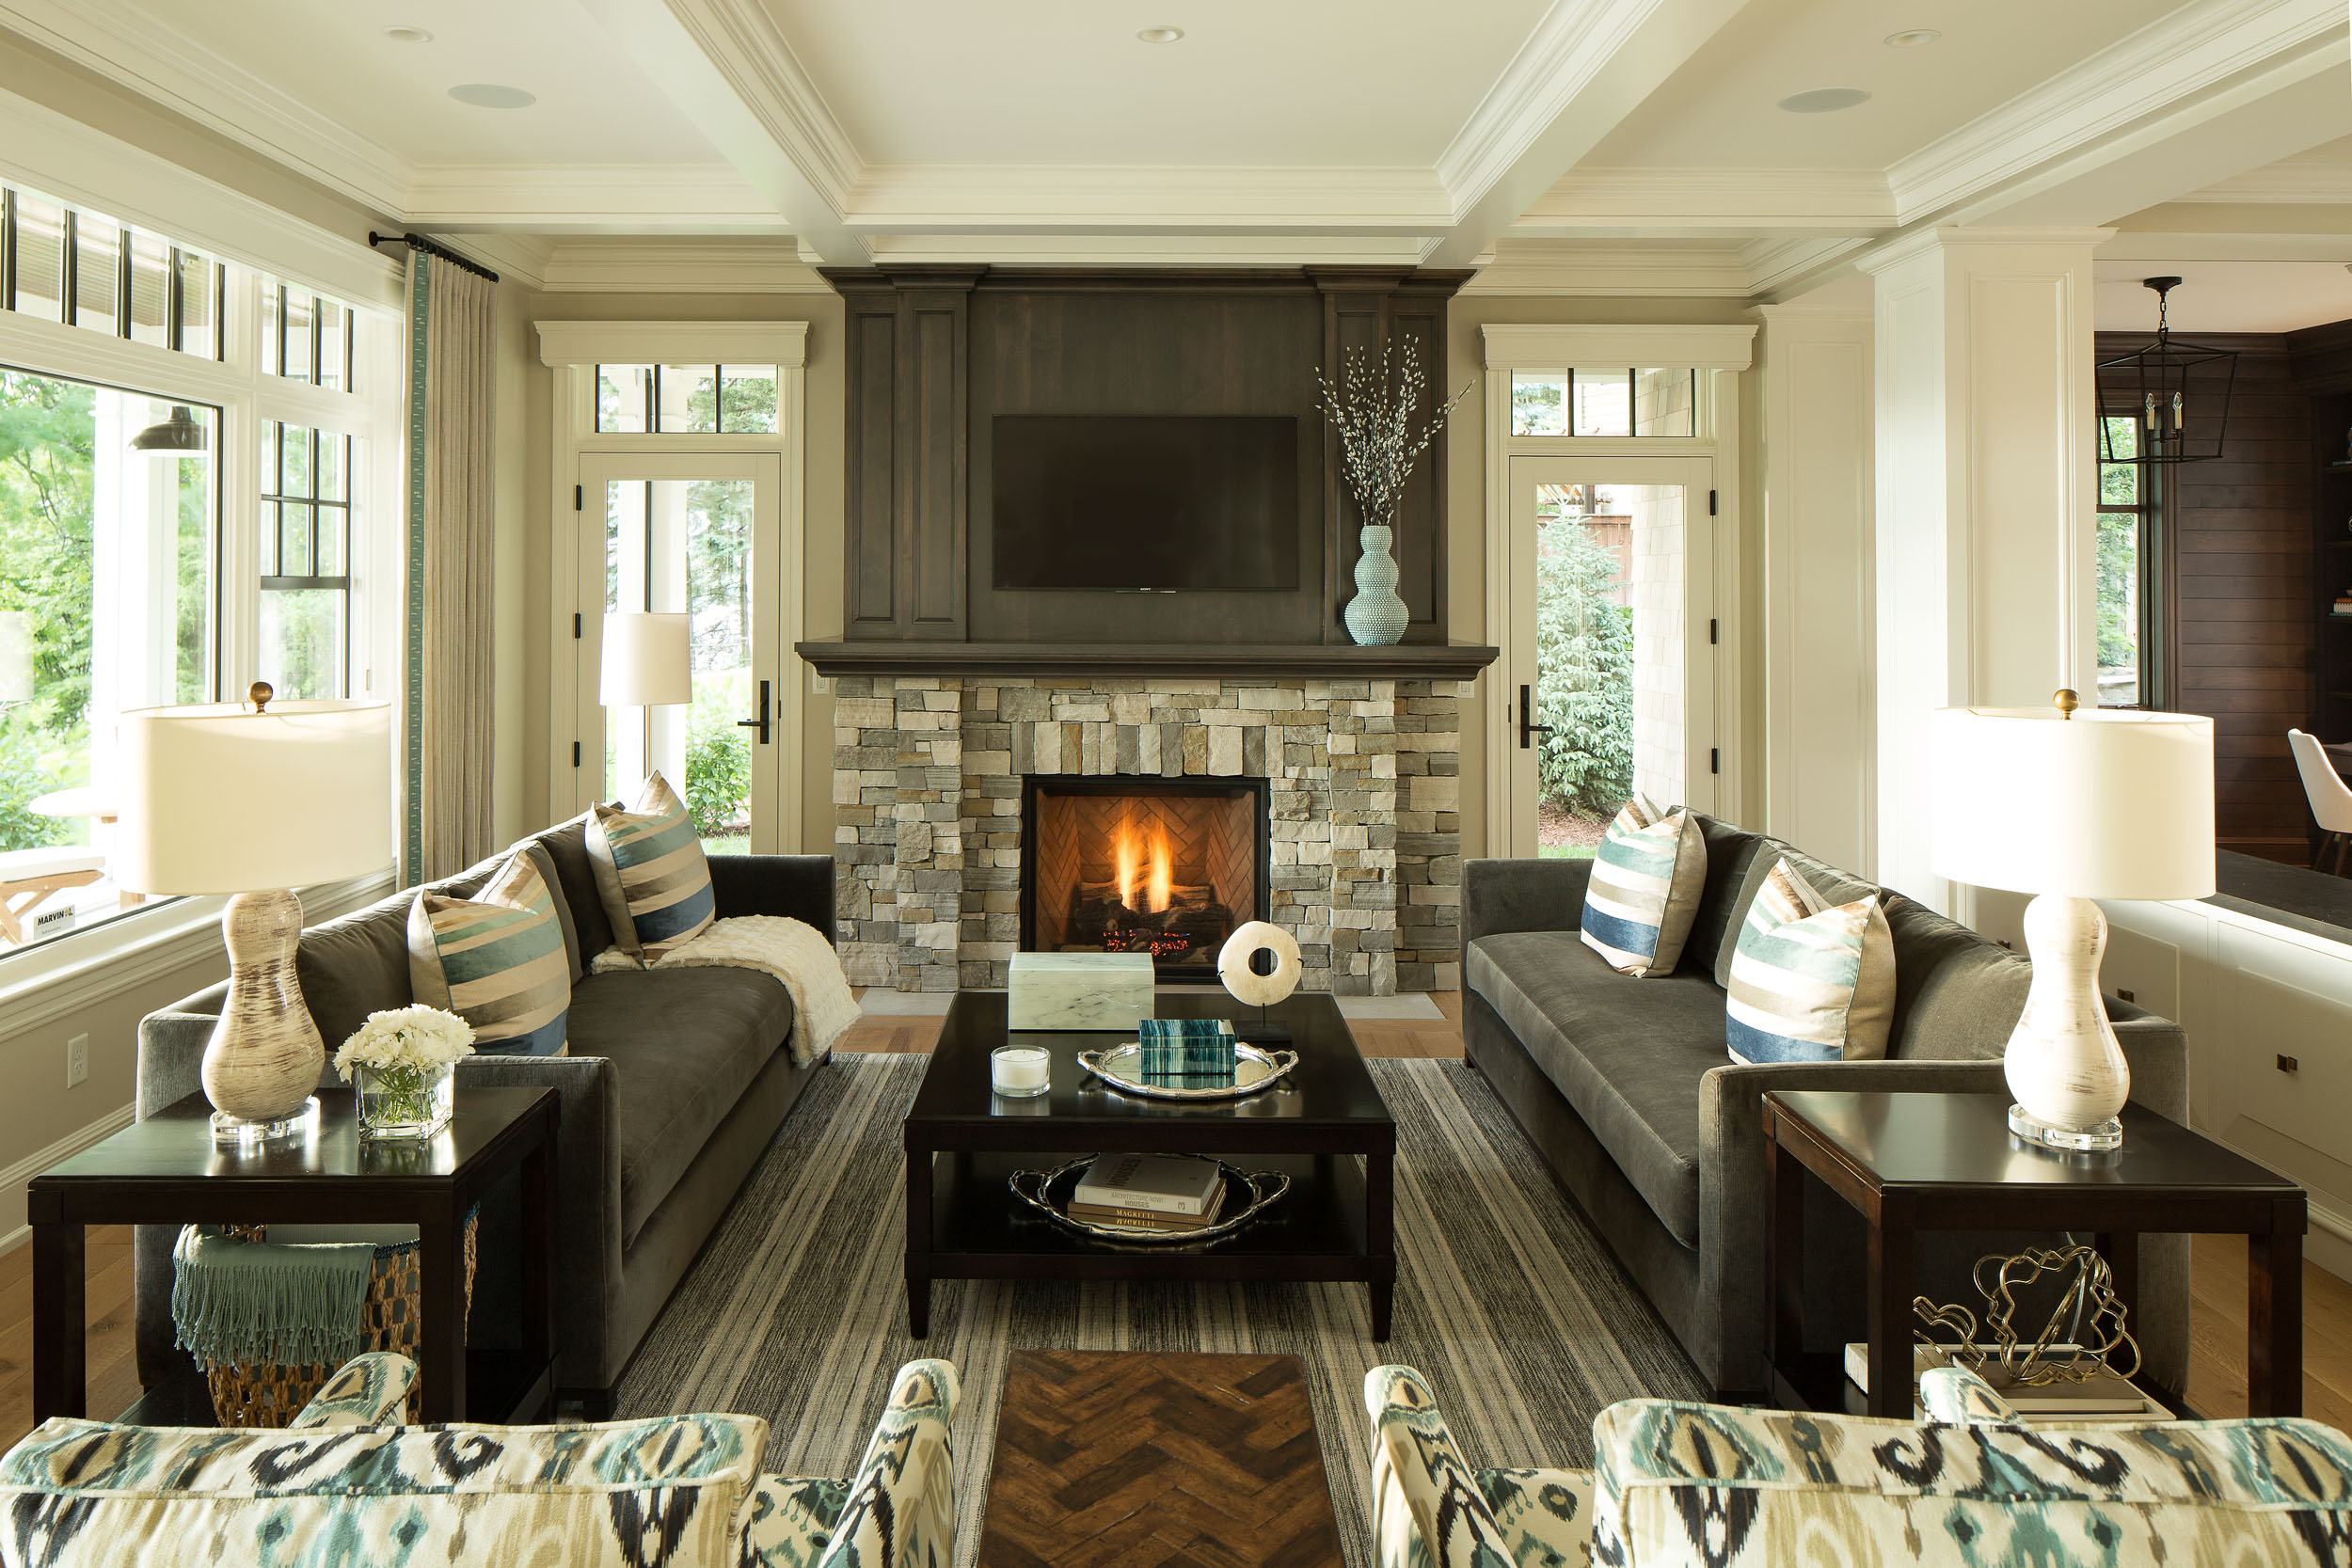 Lake Artisan Home Fireplace Image